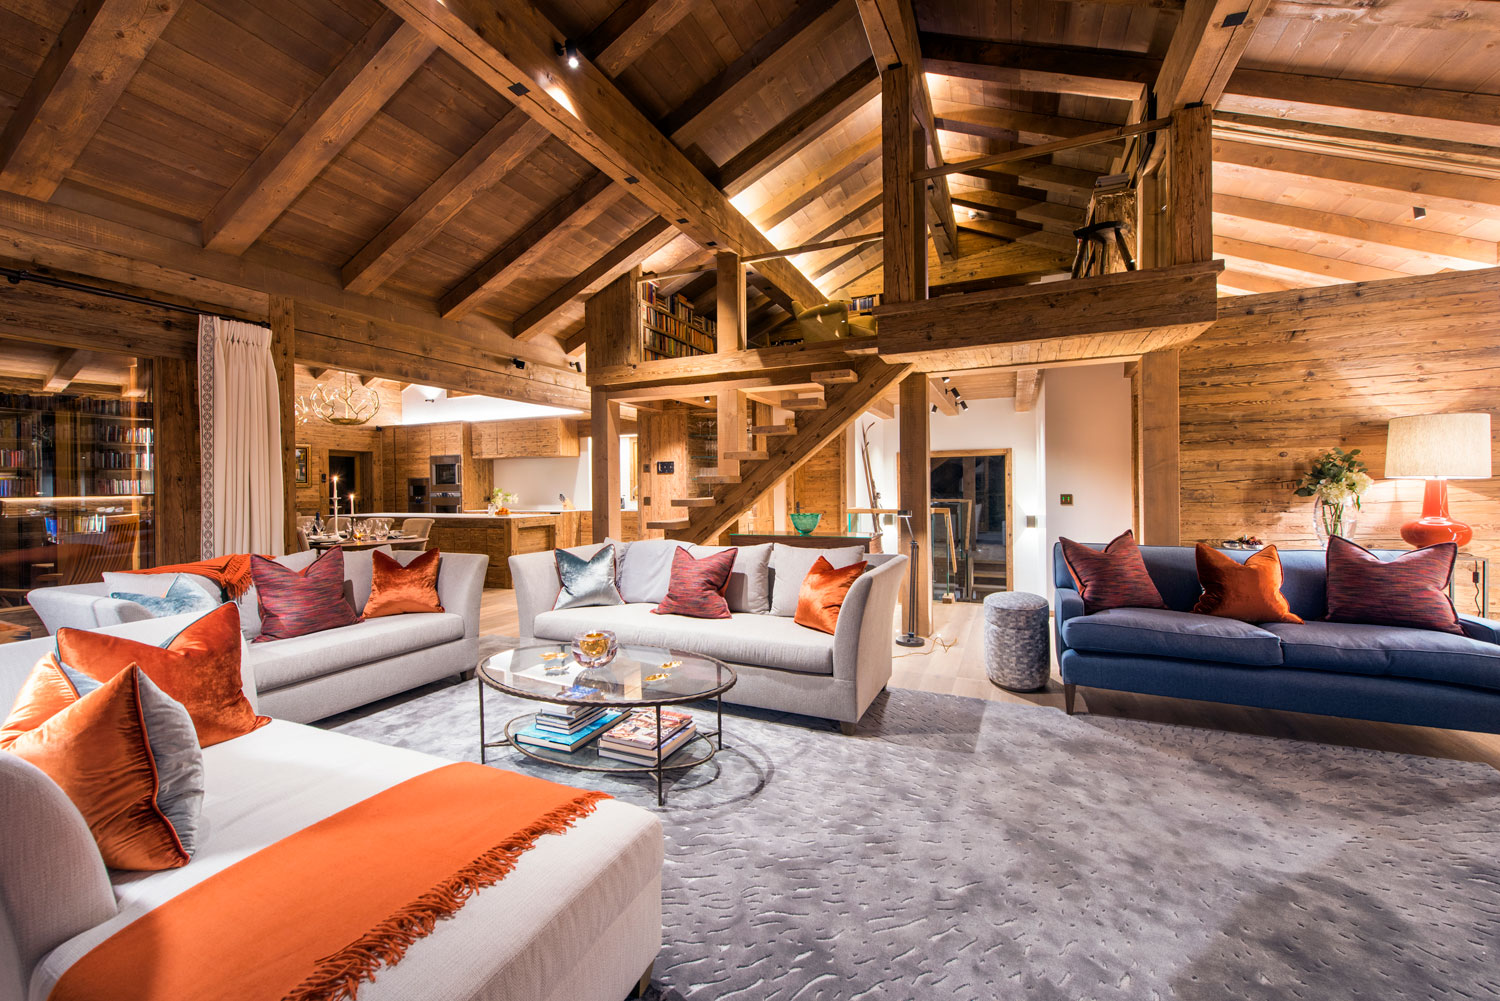 Nicola Hulbert Design Launches Luxurious Chalet Les Étrennes in Verbier 8